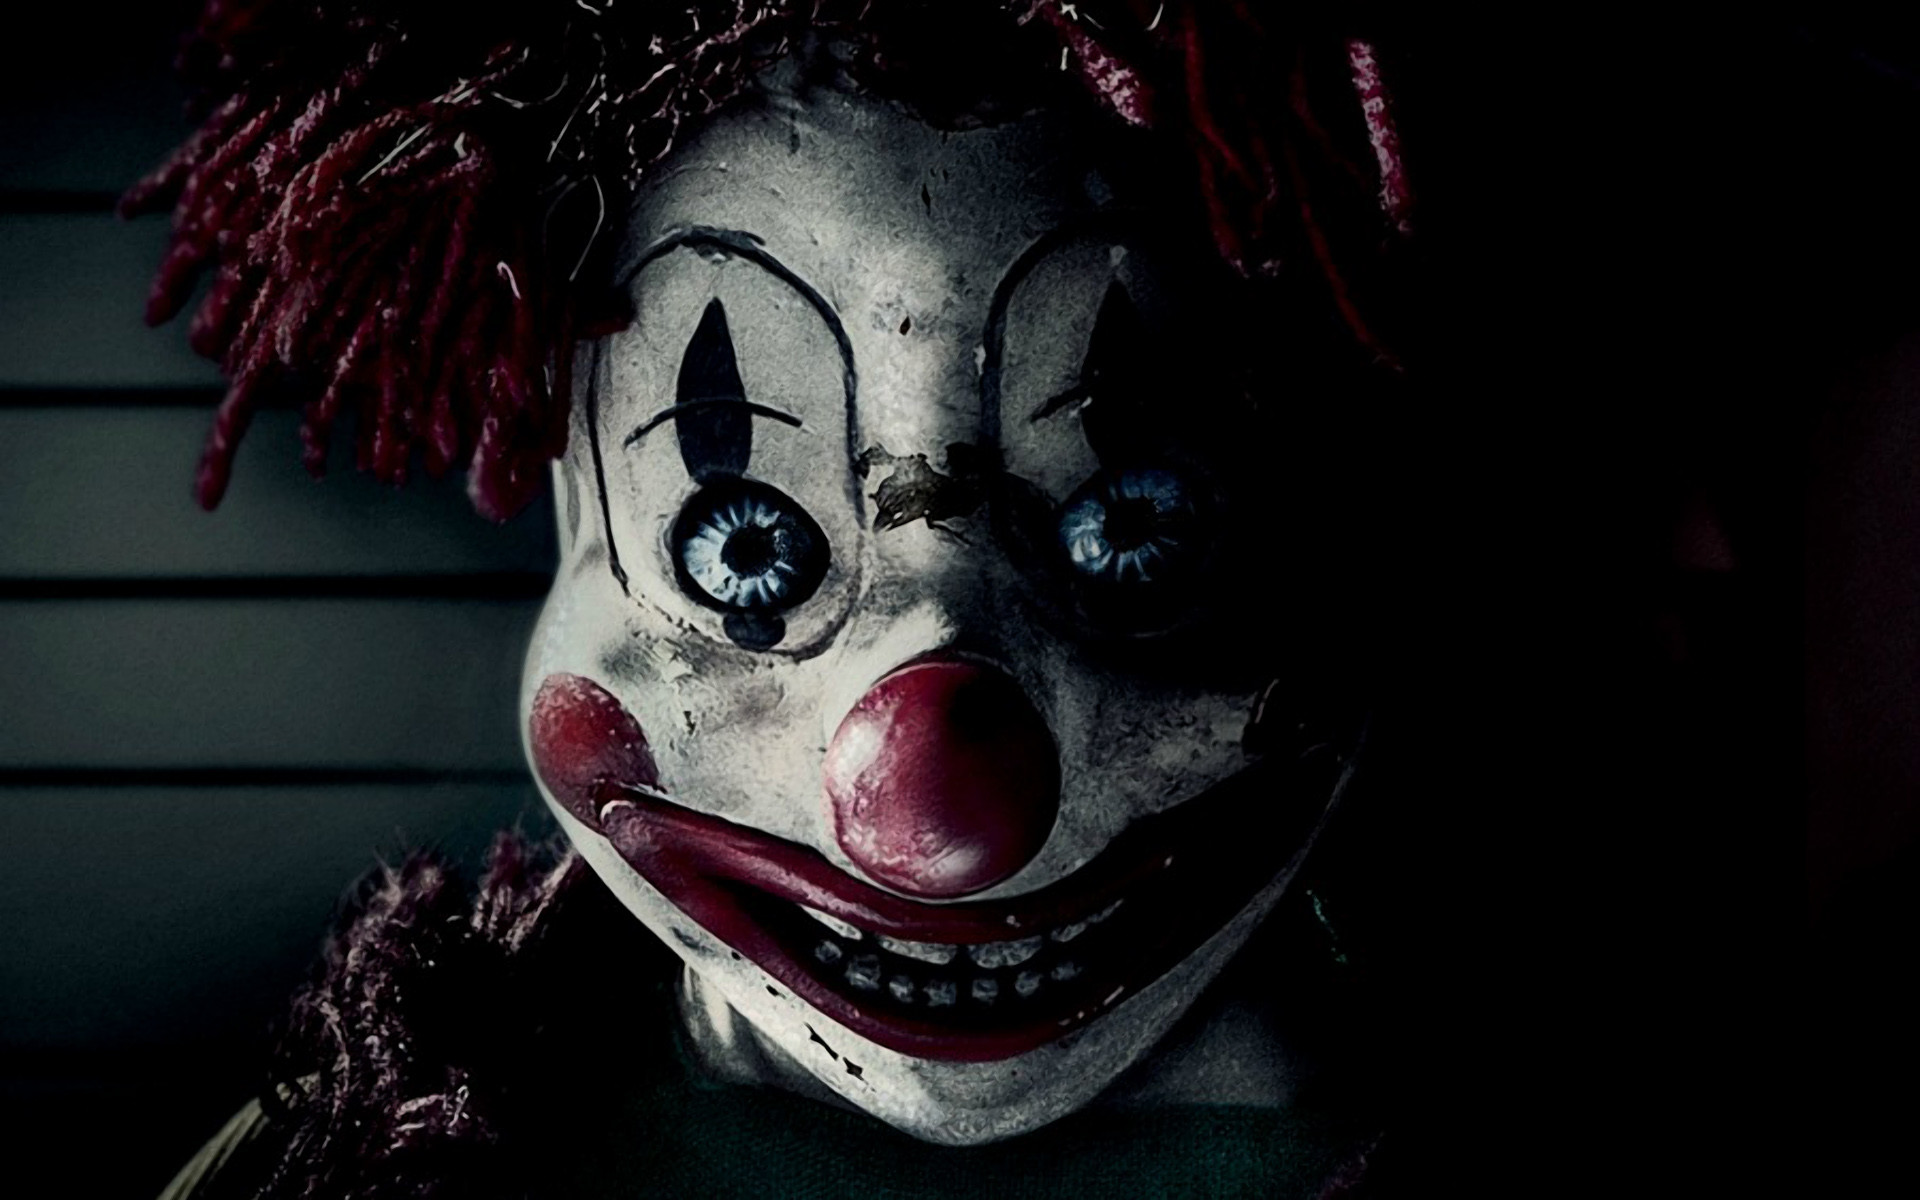 2015 Horror Movie HD Wallpaper. Search more Hollywood Movies & Films .